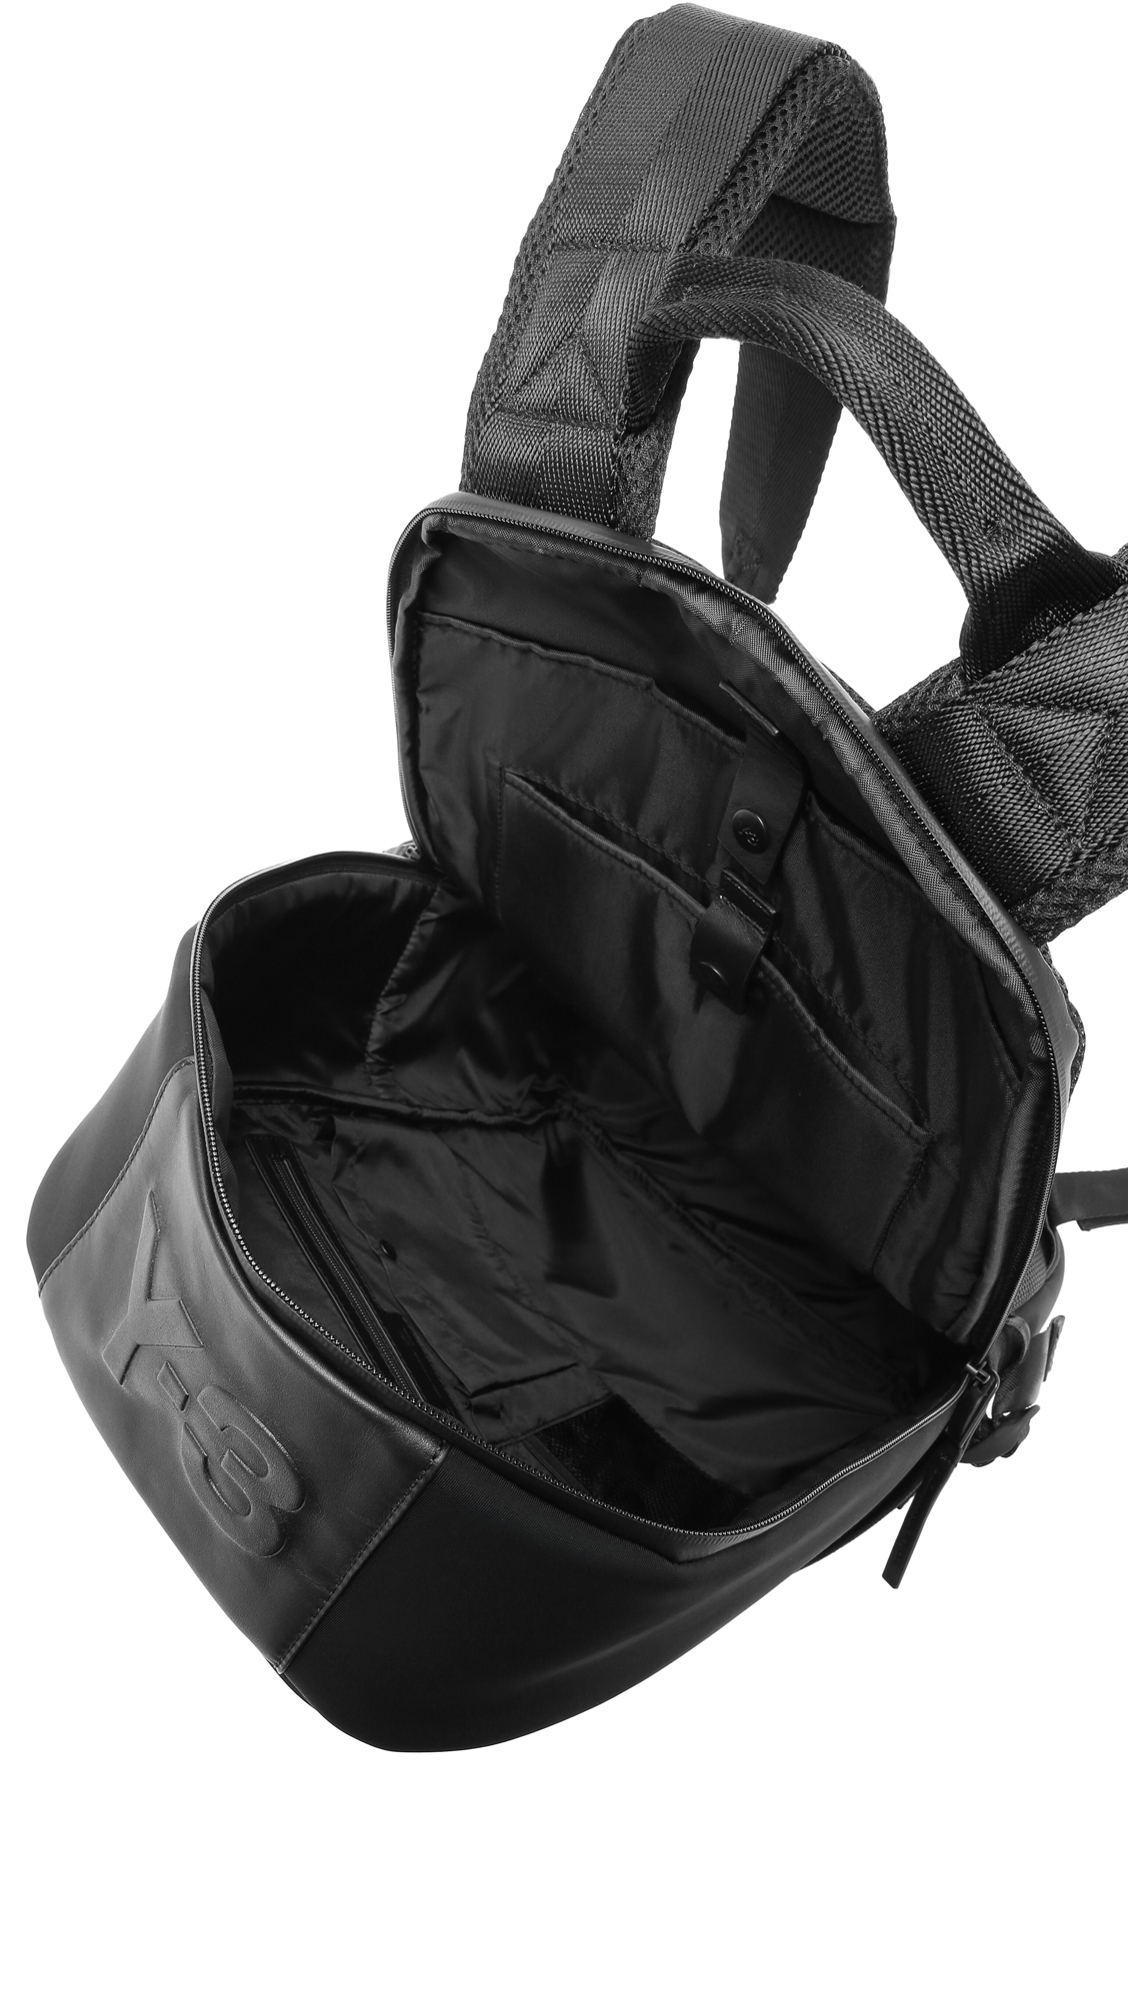 83da1c20b2 Lyst - Y-3 Day Backpack in Black for Men